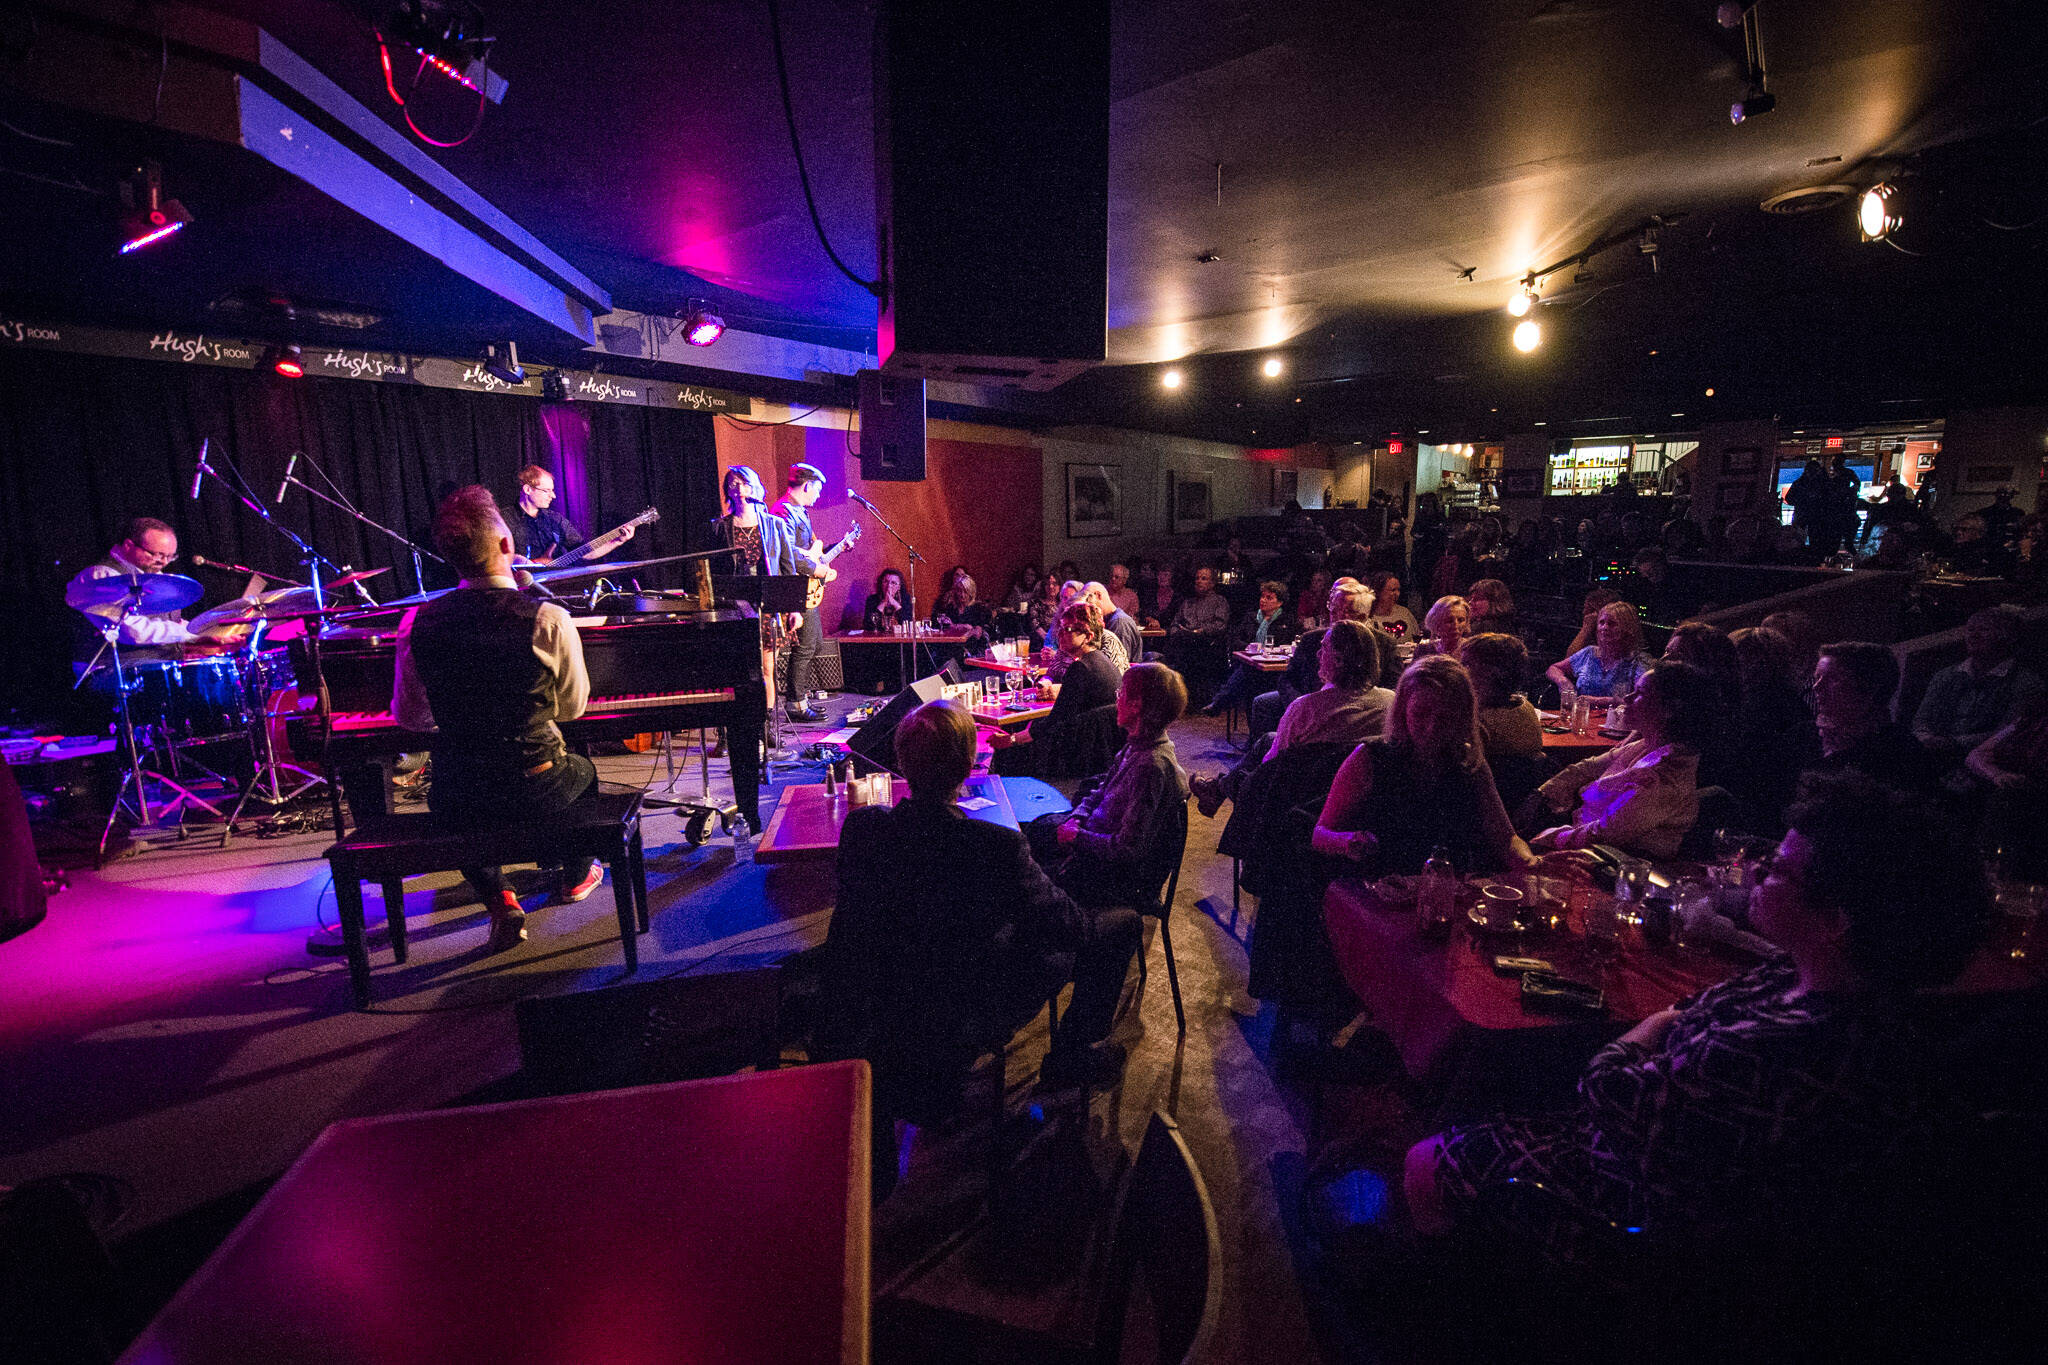 The Top 5 Restaurants For Live Music In Toronto